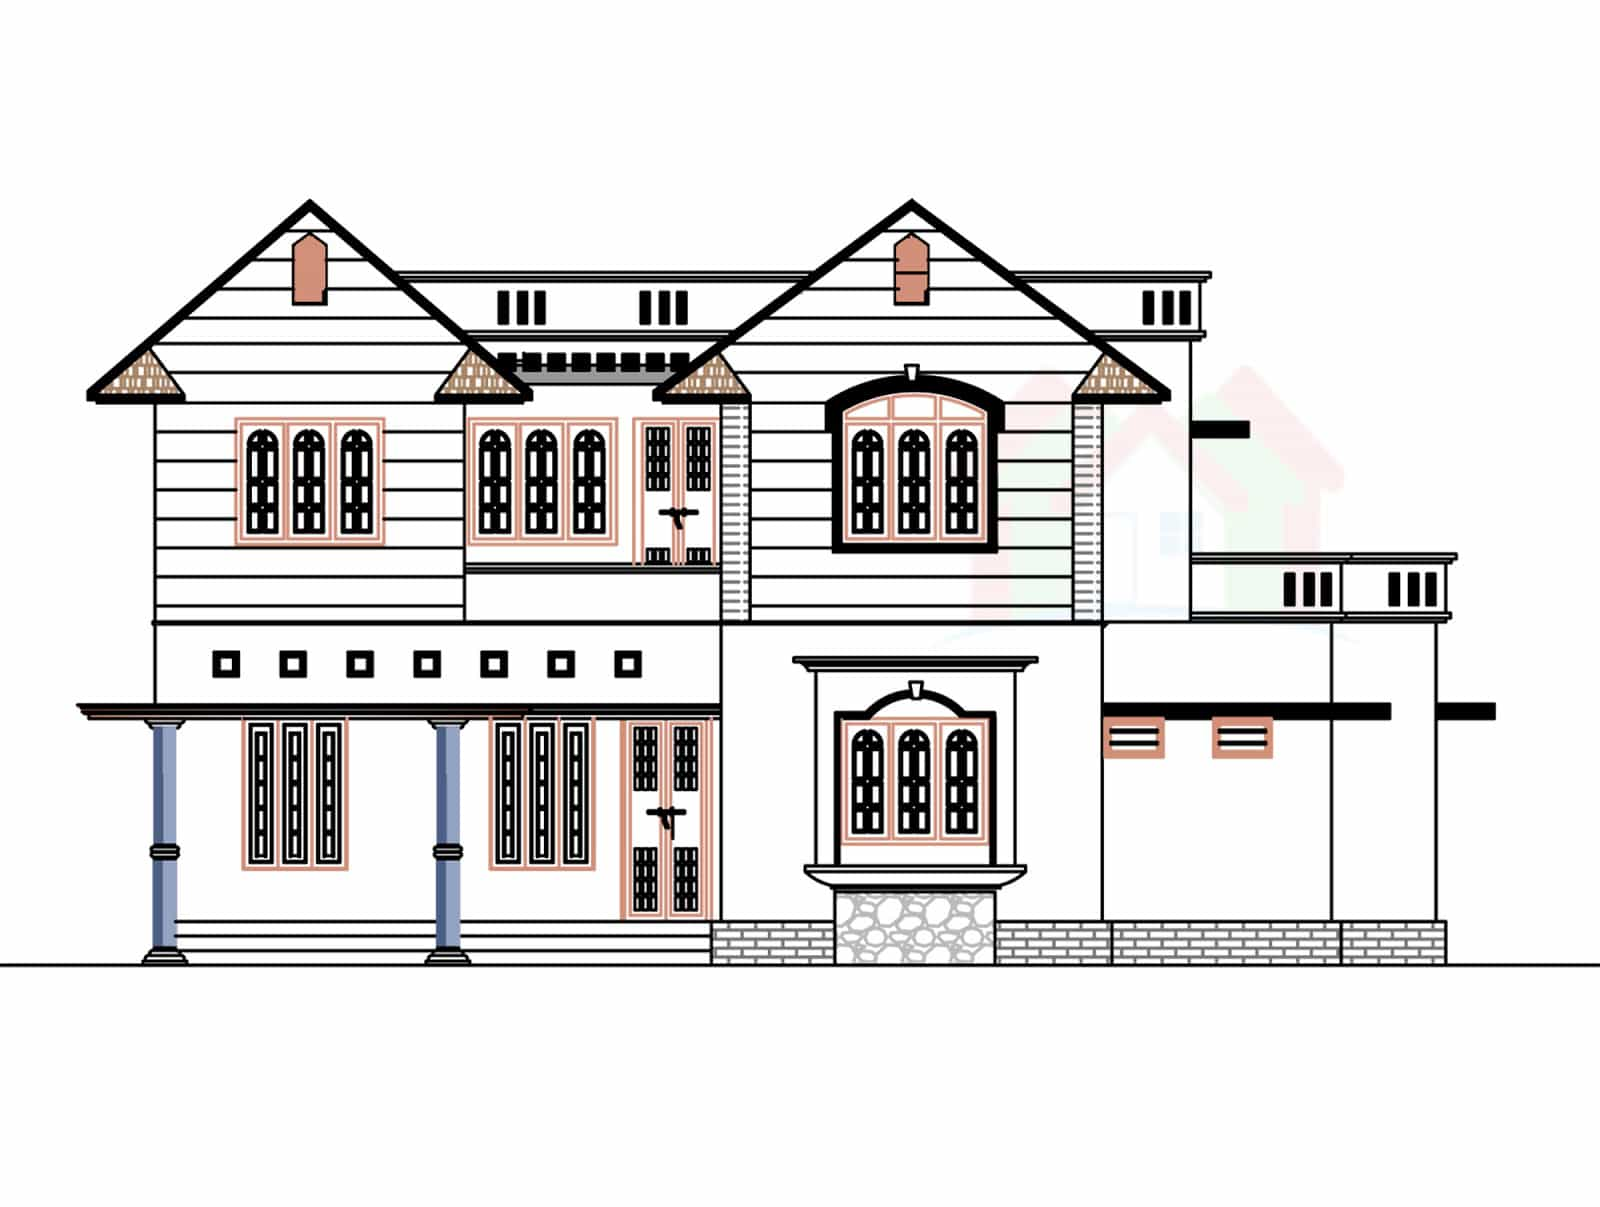 2226 Sq.ft House Design With Kerala House Plans